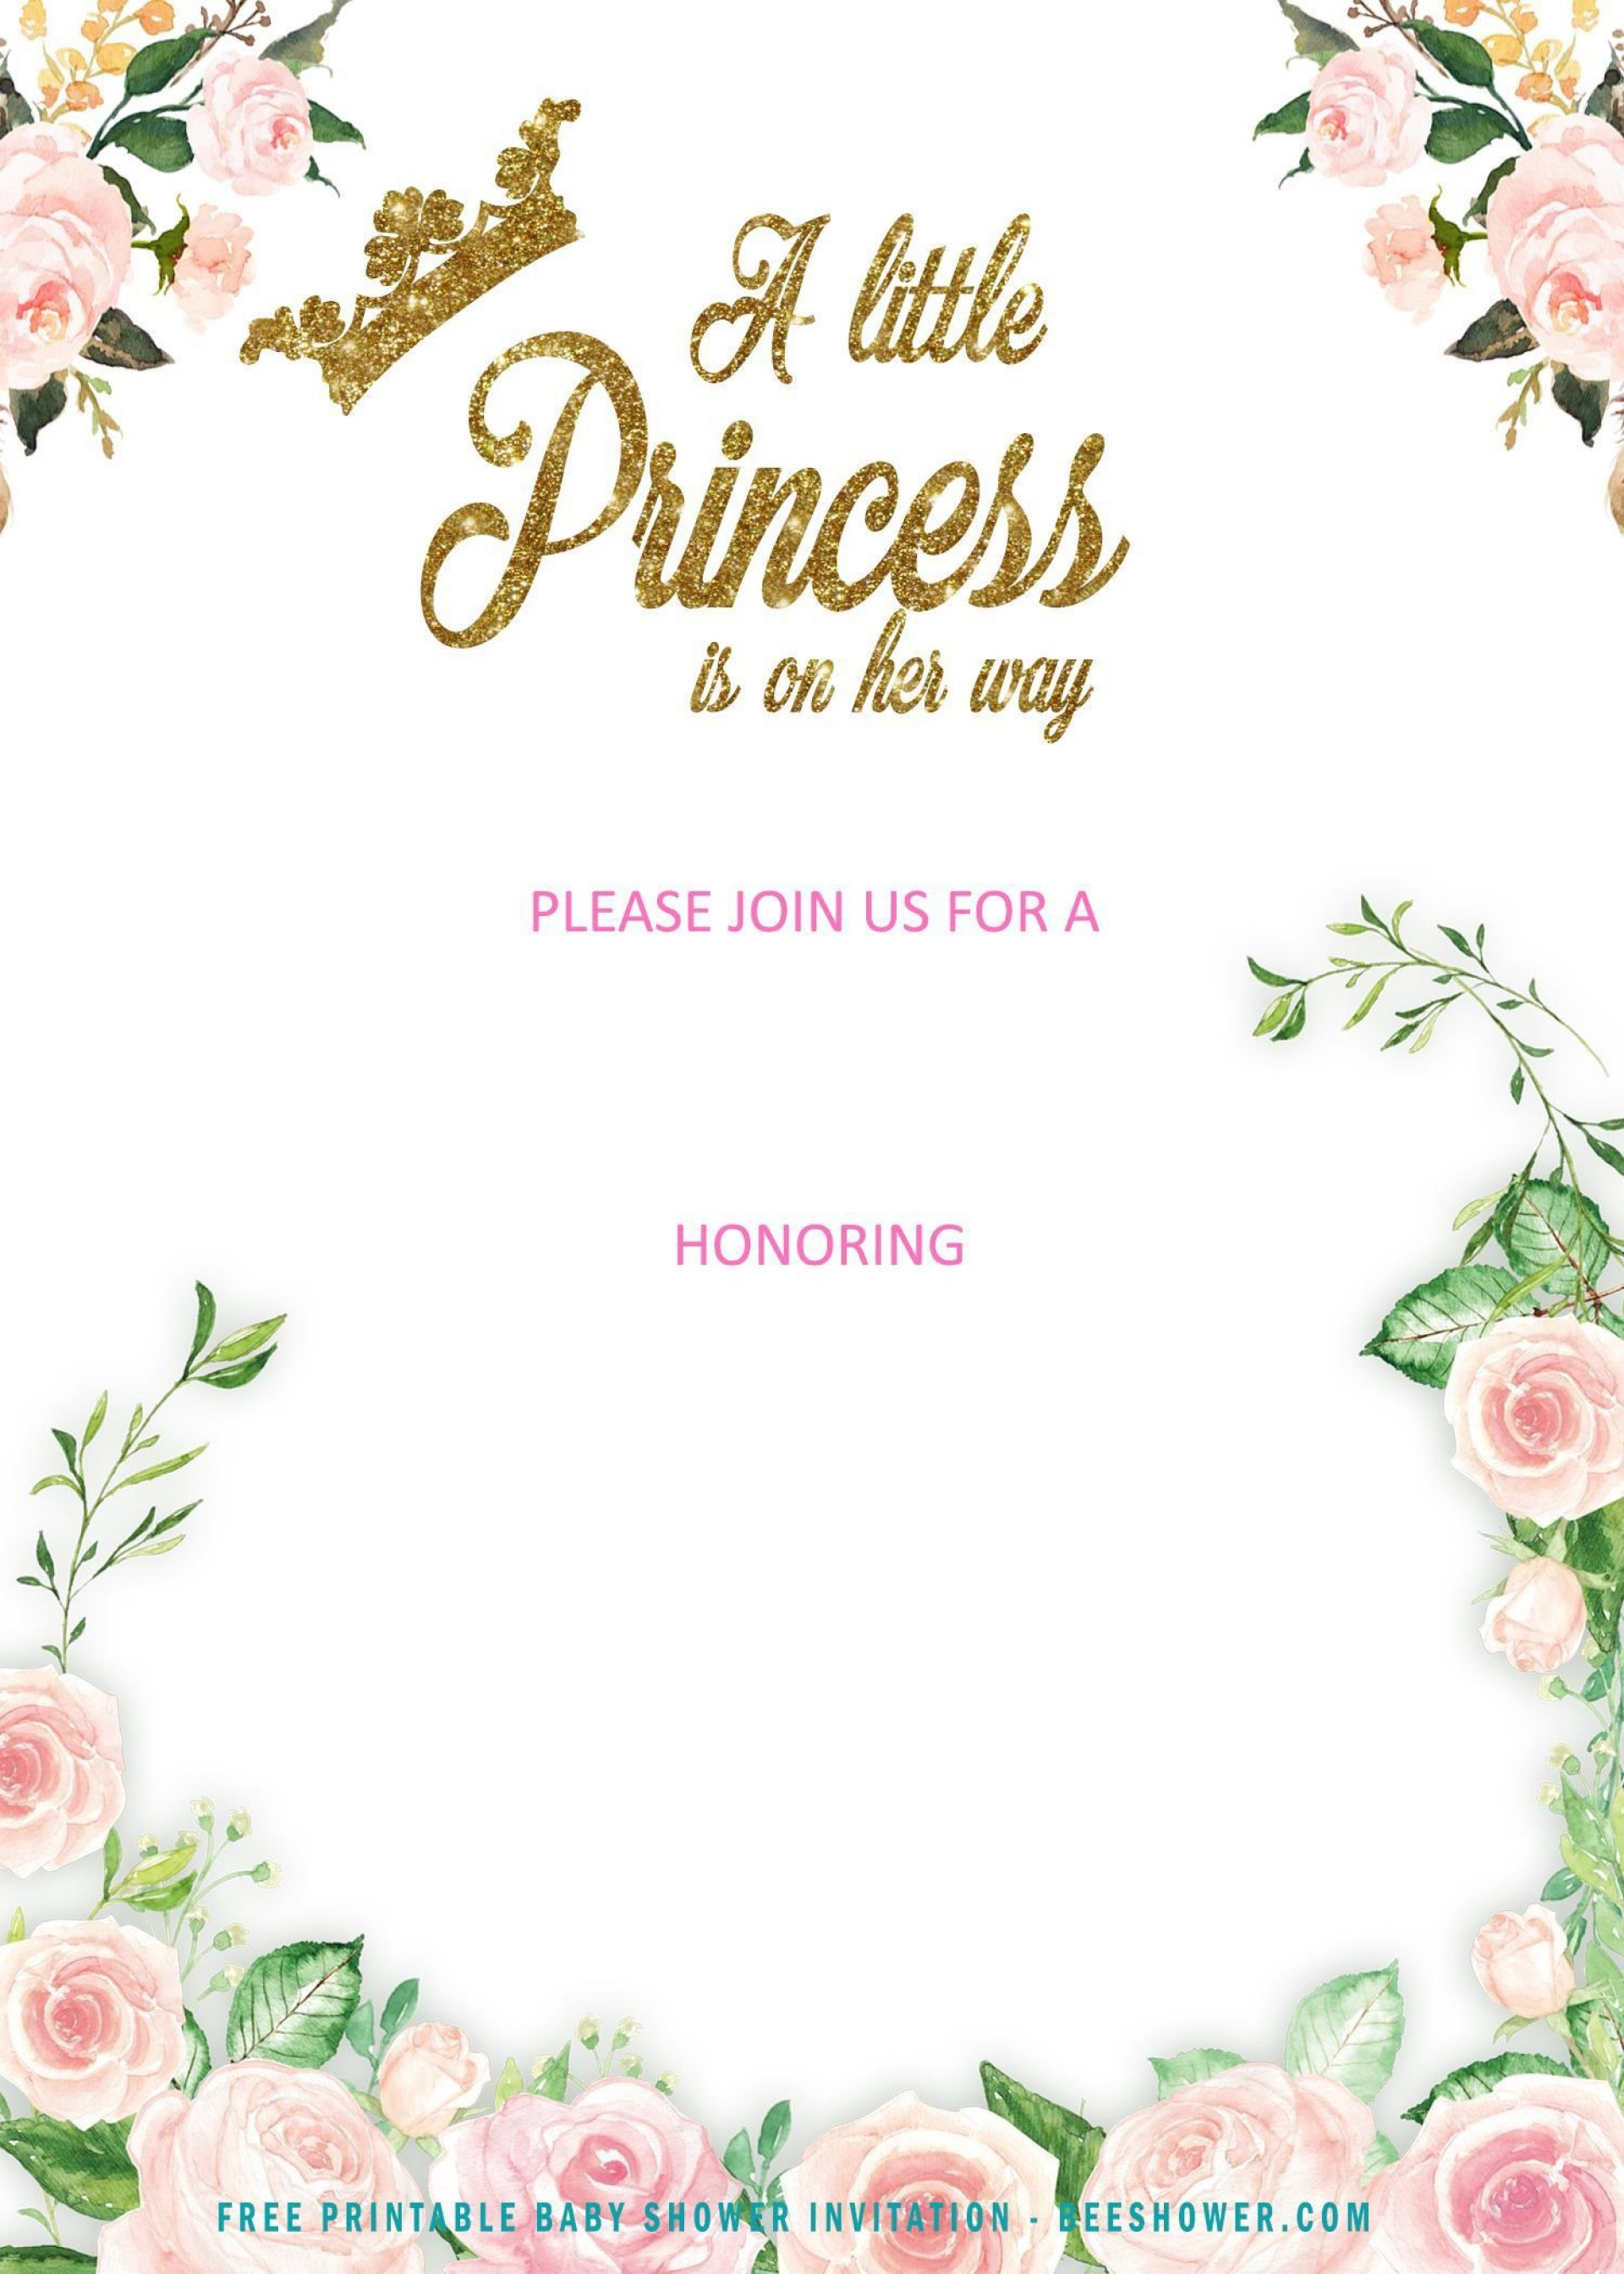 006 Incredible Free Princes Baby Shower Invitation Template For Word Sample 1920